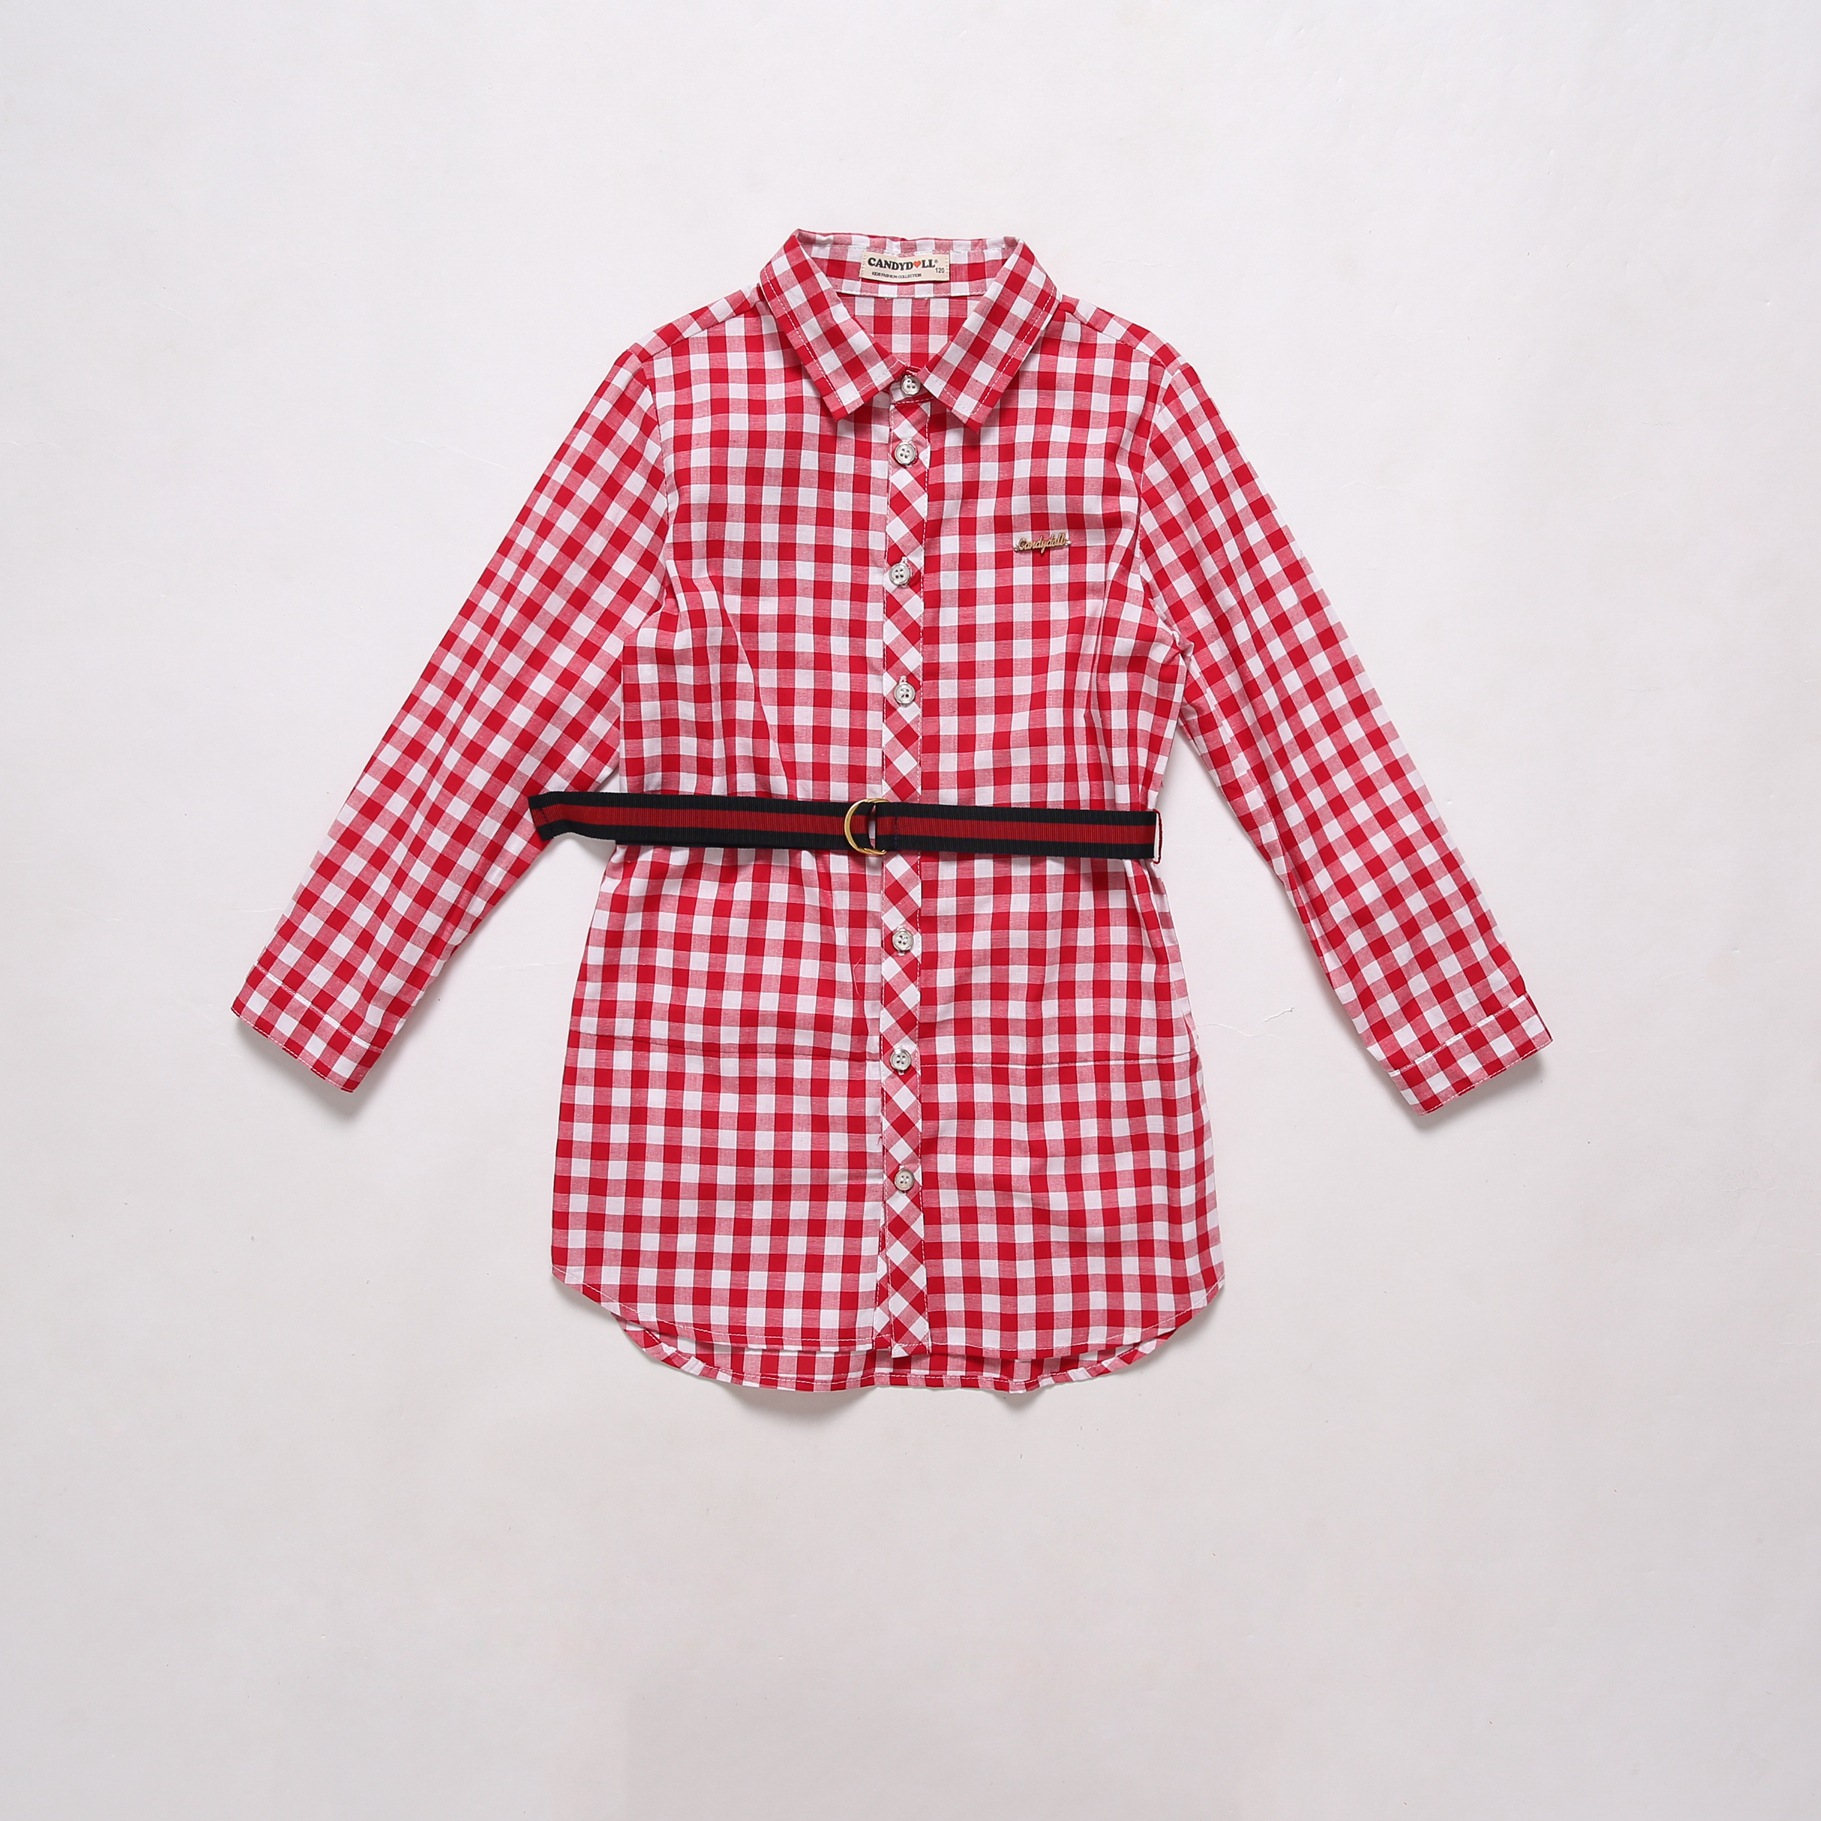 CANDYDOLL The new autumn children 39 s dress casual plaid long style of children 39 s shirt cotton long sleeve girl 39 s dress in Dresses from Mother amp Kids